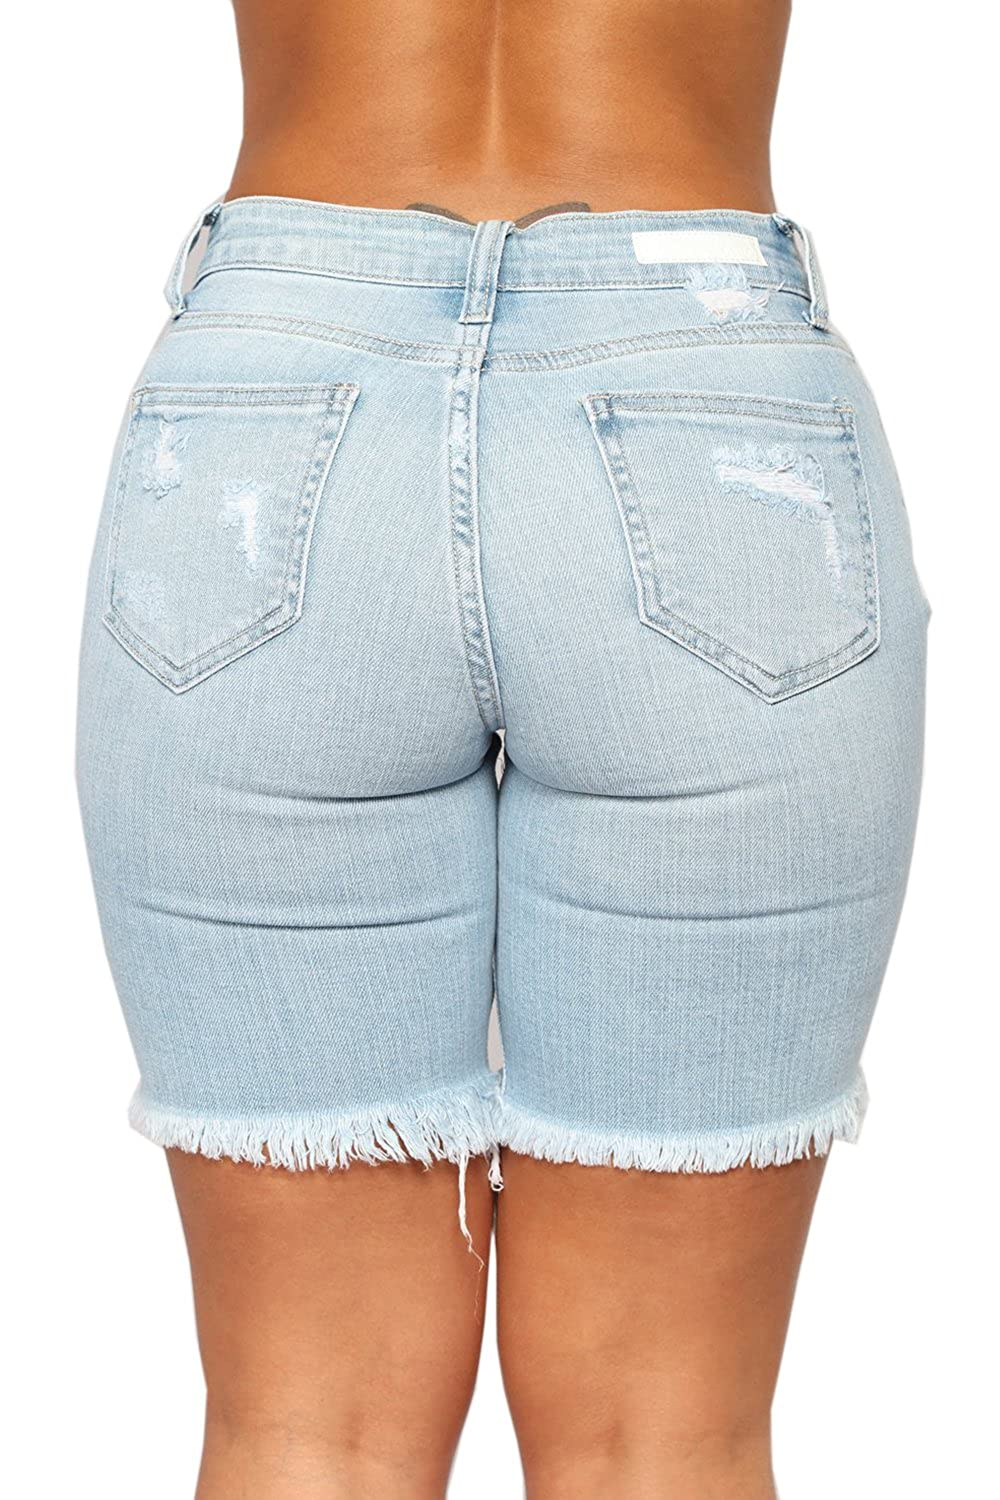 Women's Clothing Sincere Ripped Hole Fringe Denim Shorts Women Casual Pocket Jeans Shorts 2019 Summer Female Wide Leg Hot Shorts Button Attractive Designs; Bottoms